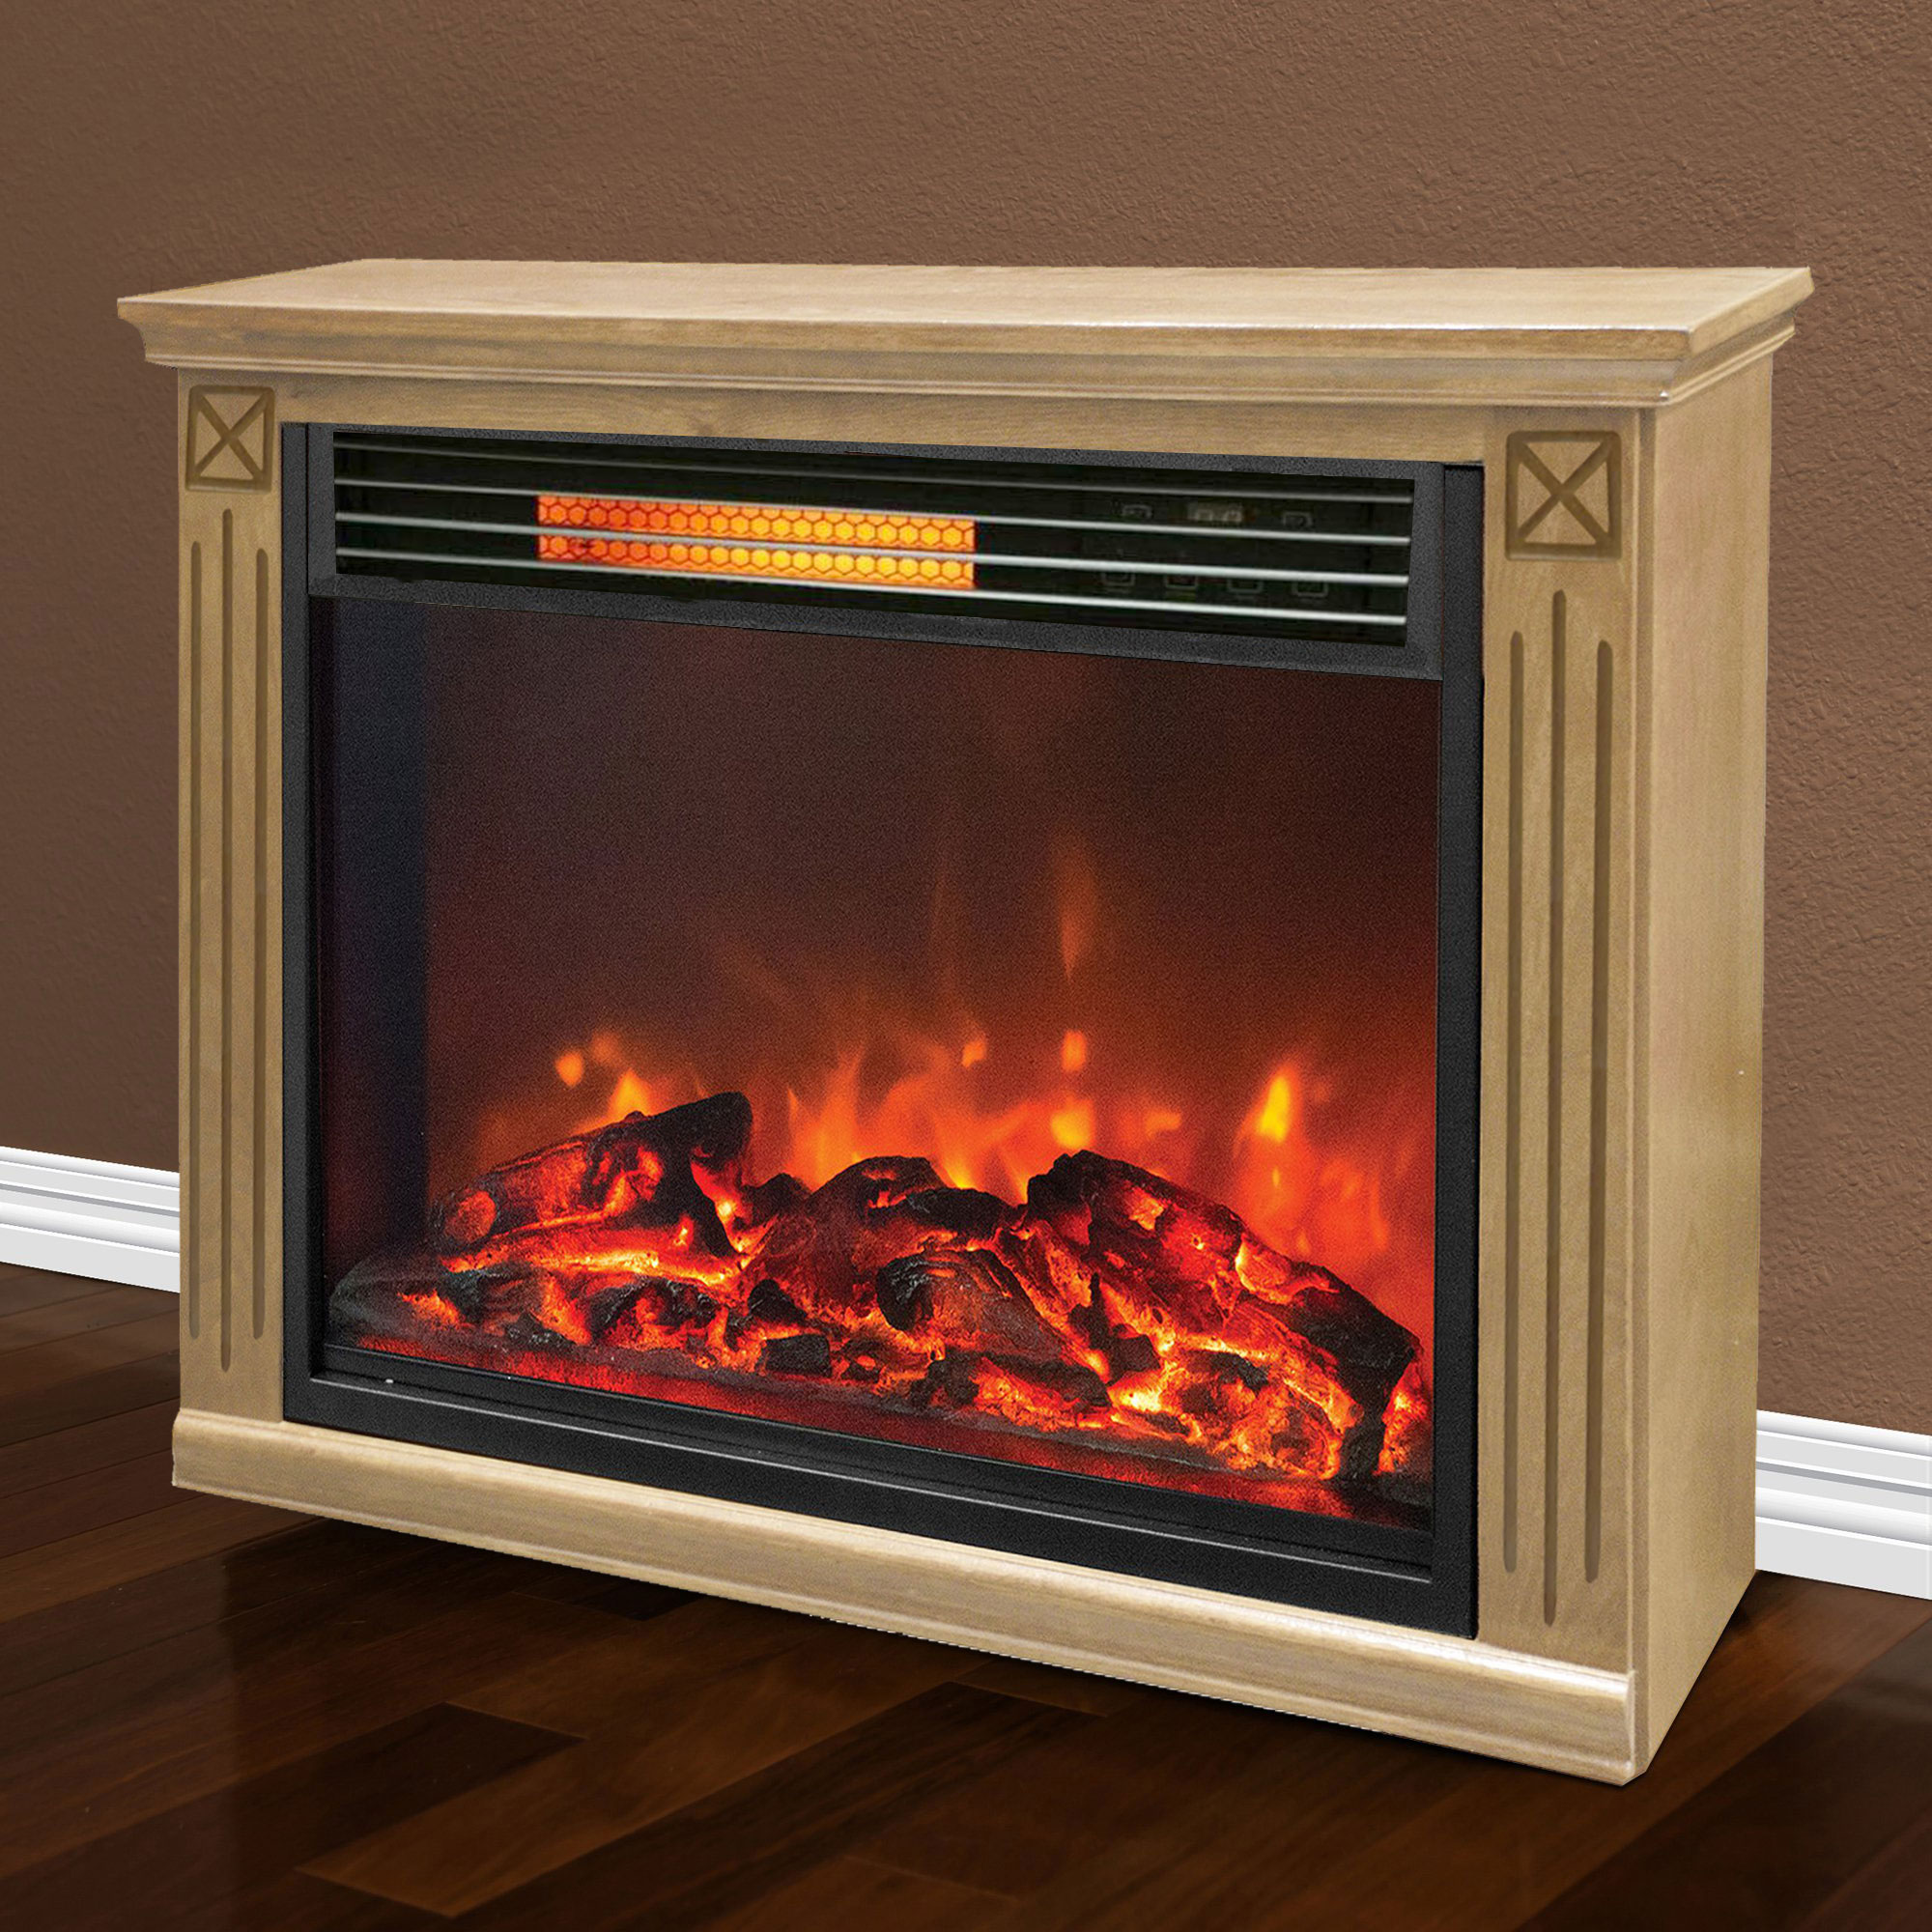 Lifesmart big room electric infrared quartz fireplace for Electric fireplace motor noise